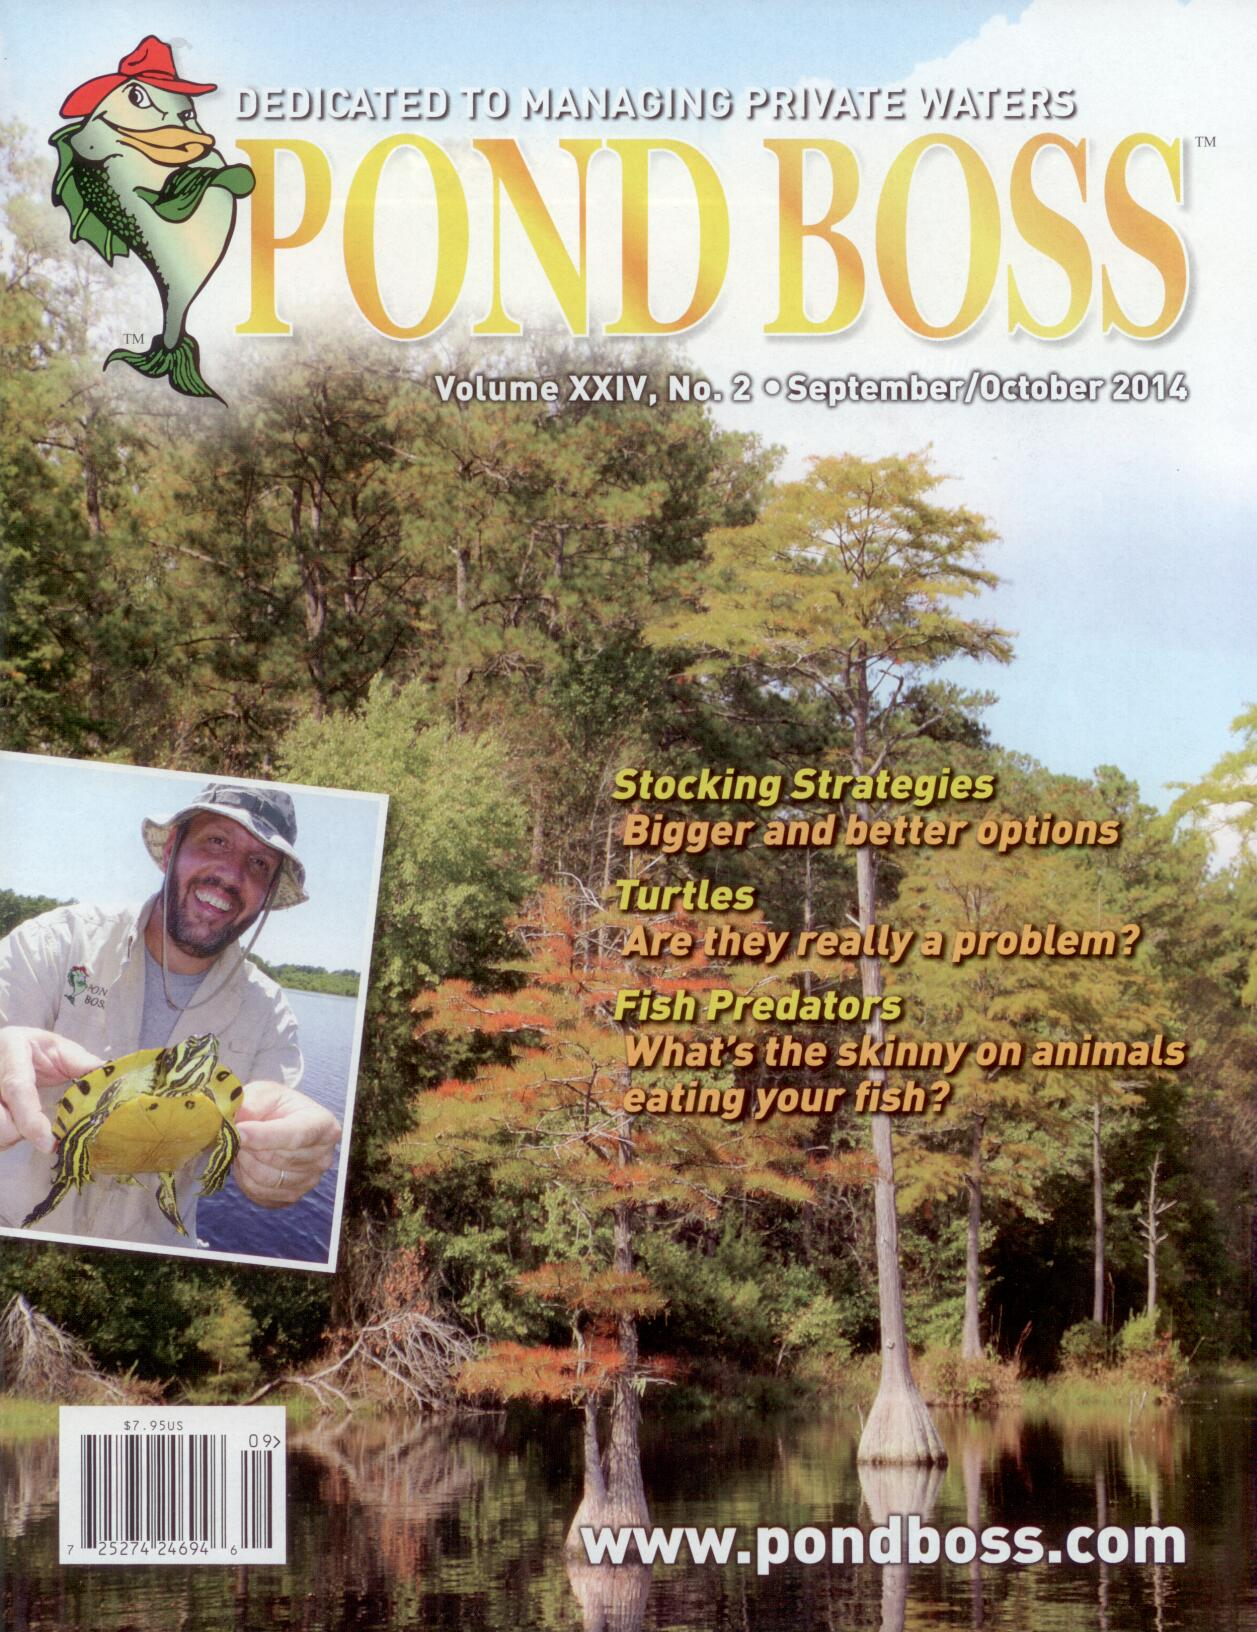 Pond Boss Magazine - Managing Multiple Ponds to Create the Ultimate Fishery